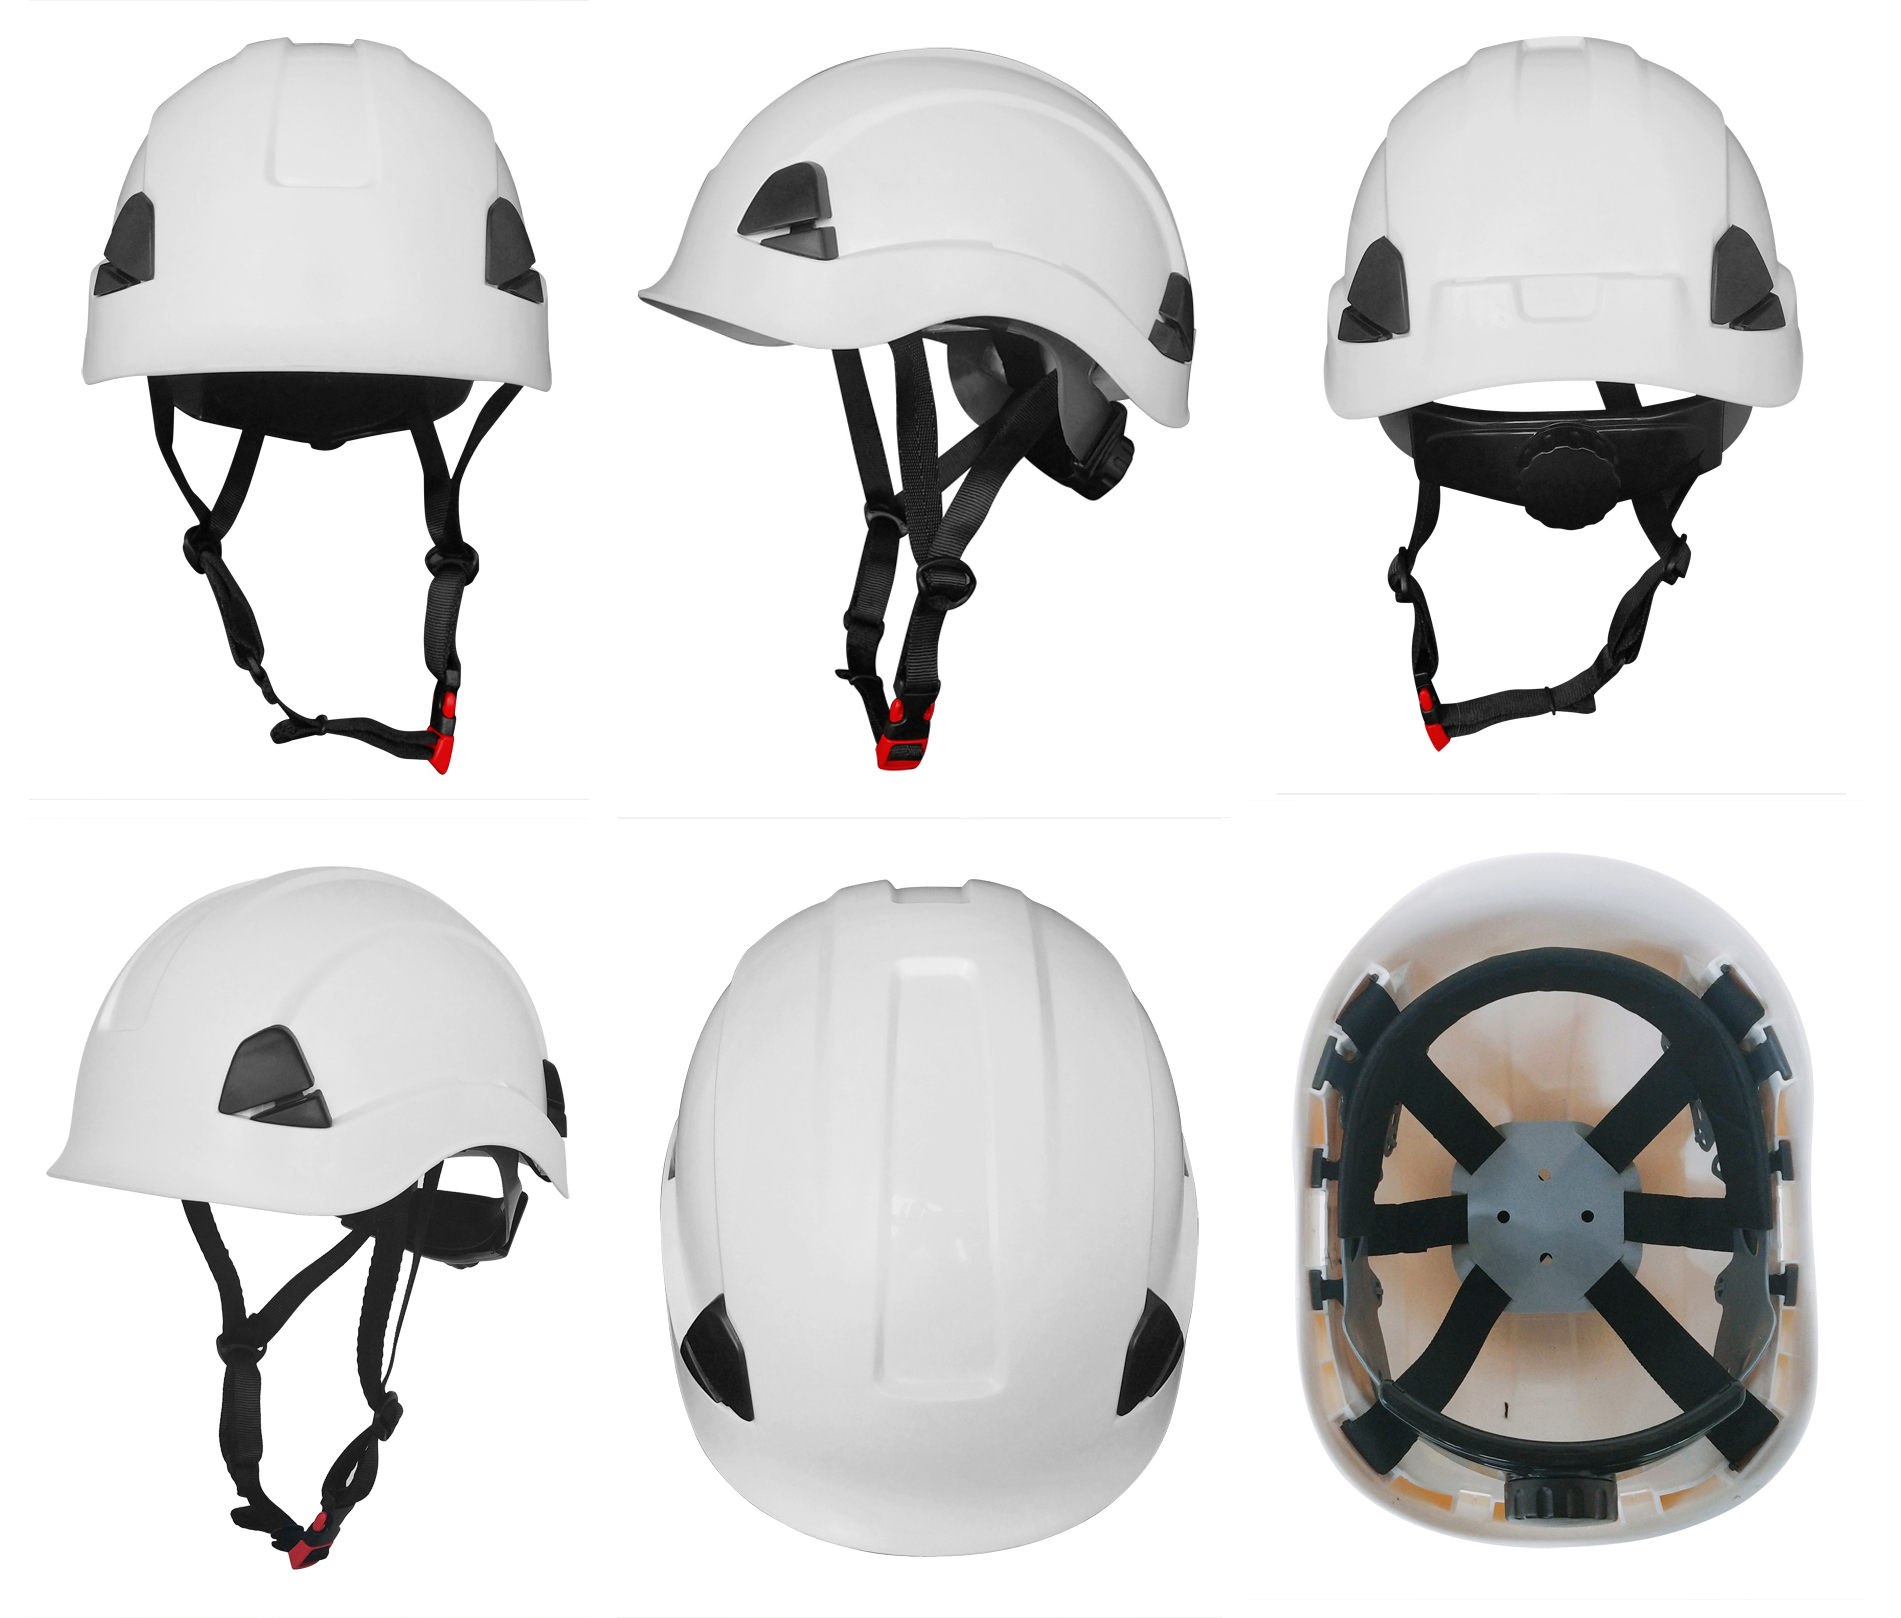 Direct factory price White Arborist Safety Helmet